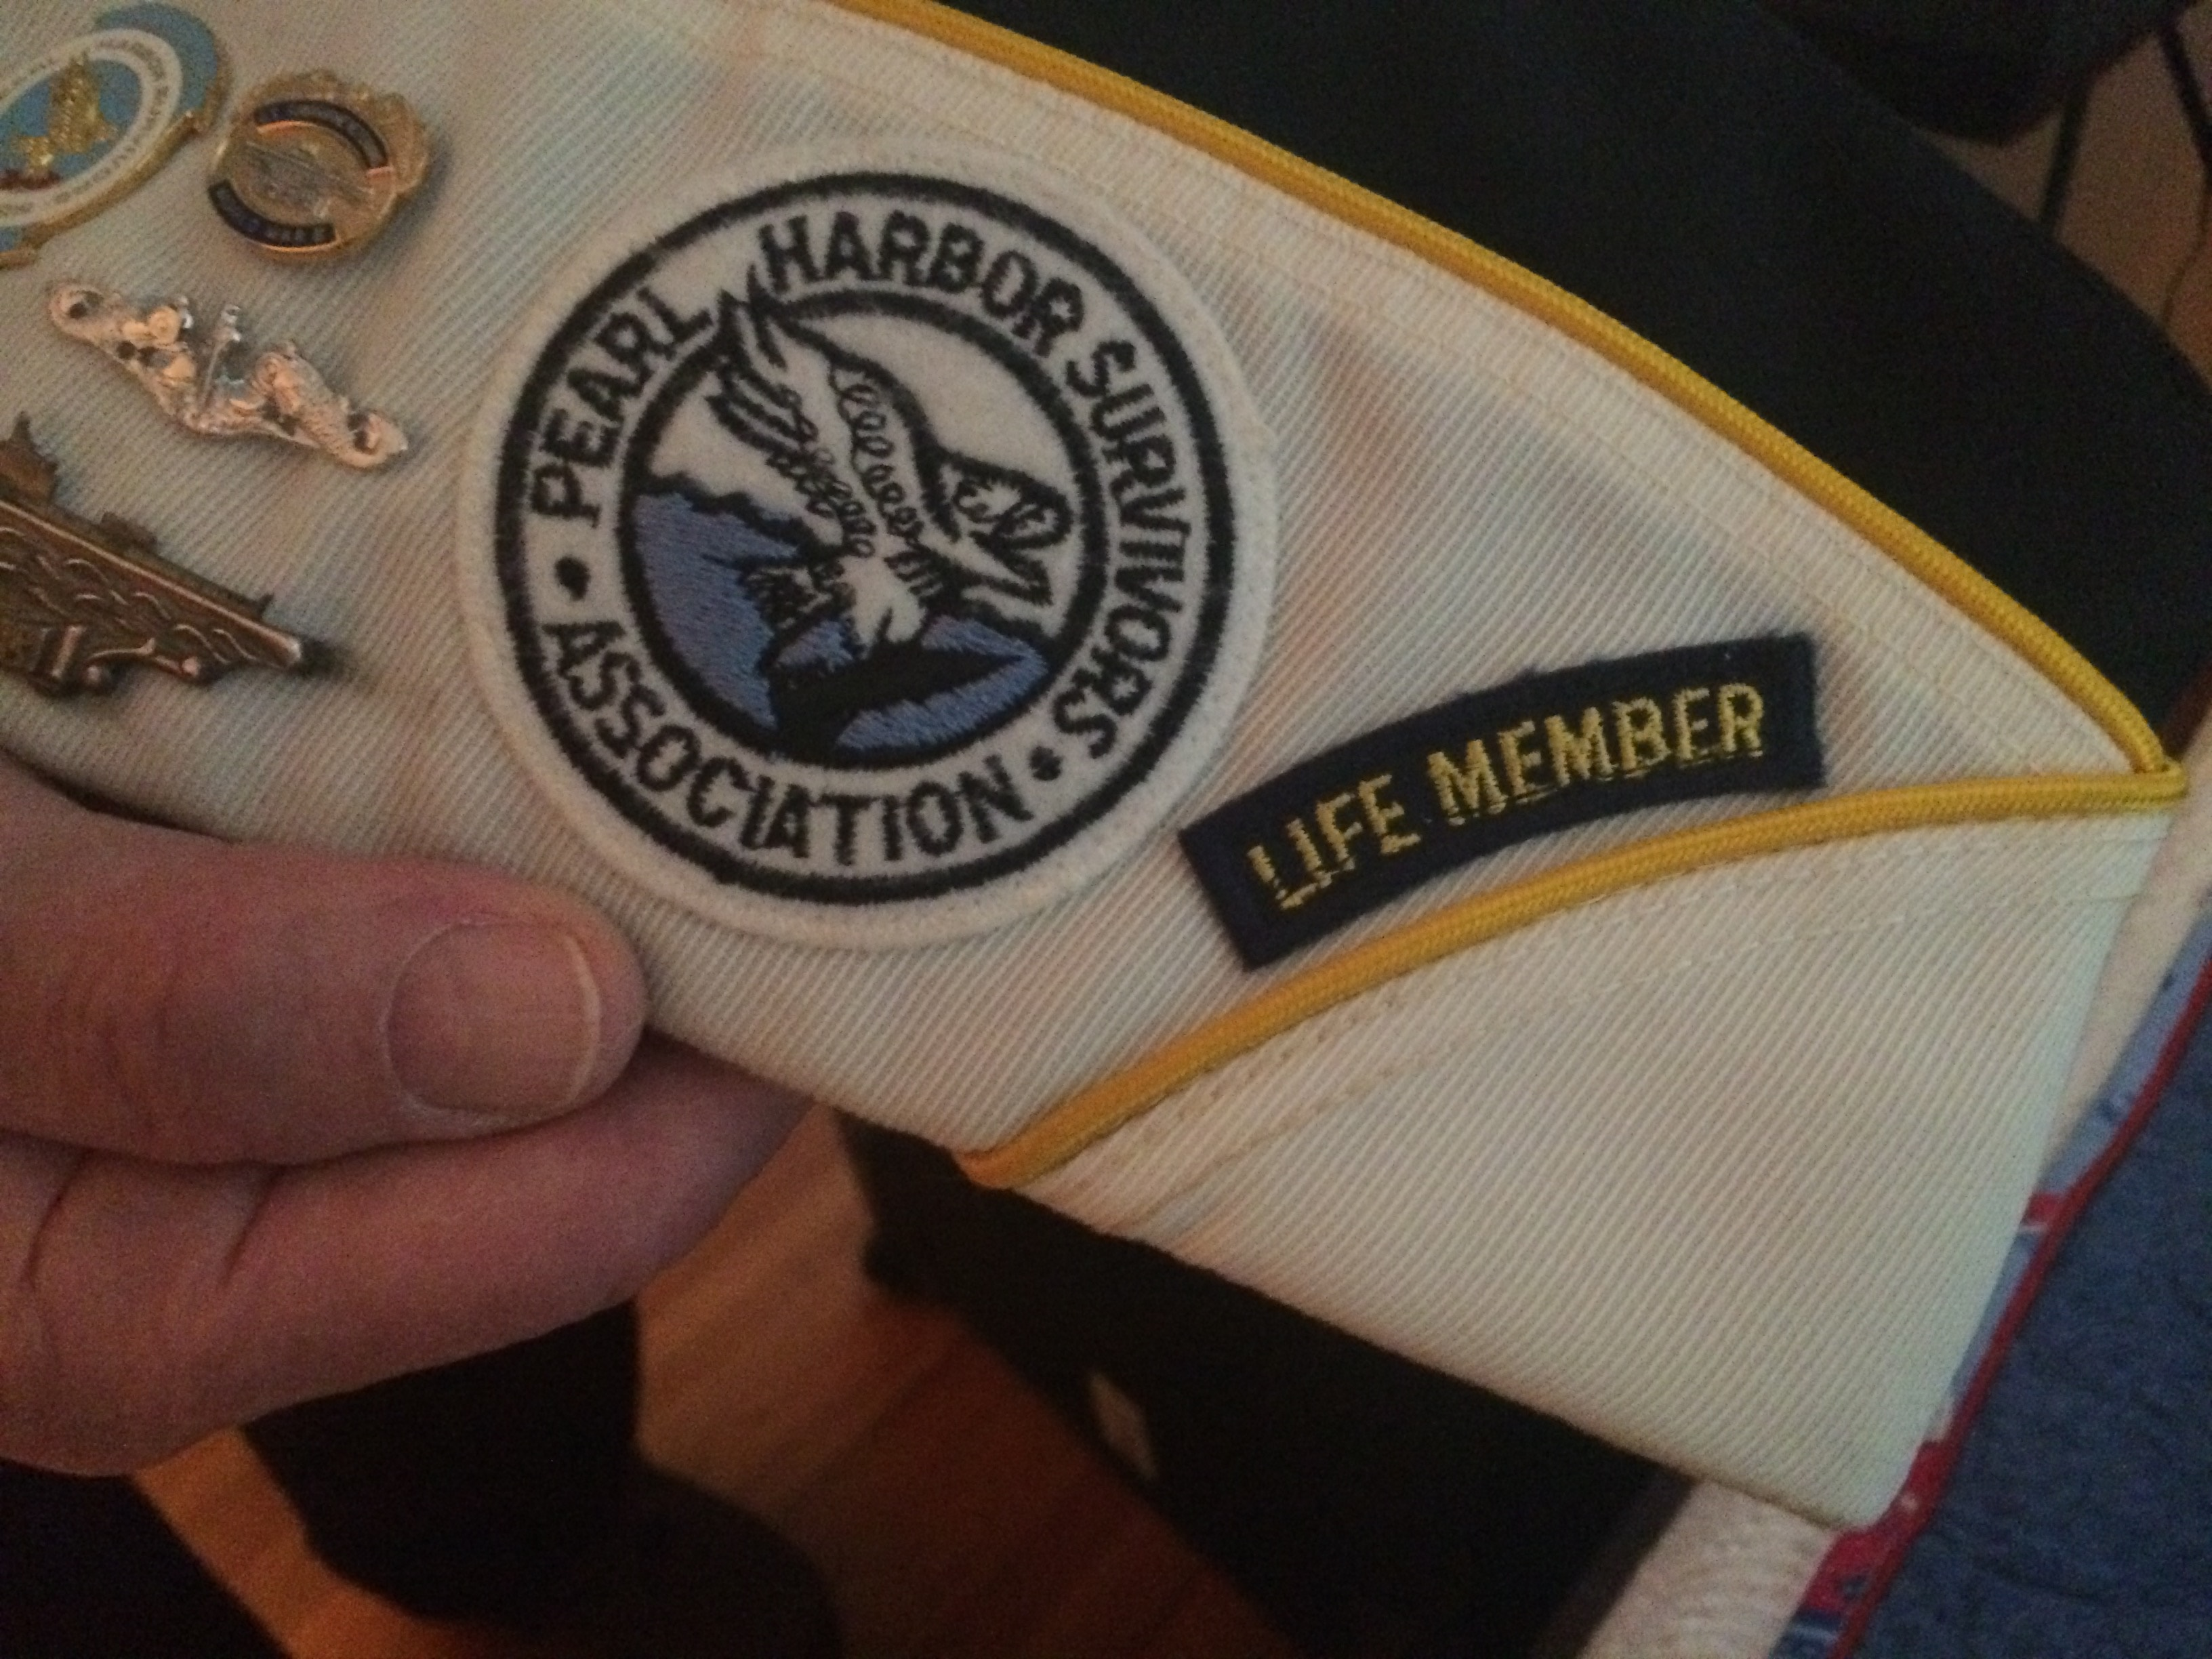 Ed Stone's cap: A Pearl Harbor survivor. (Sean Kirst/submitted image)